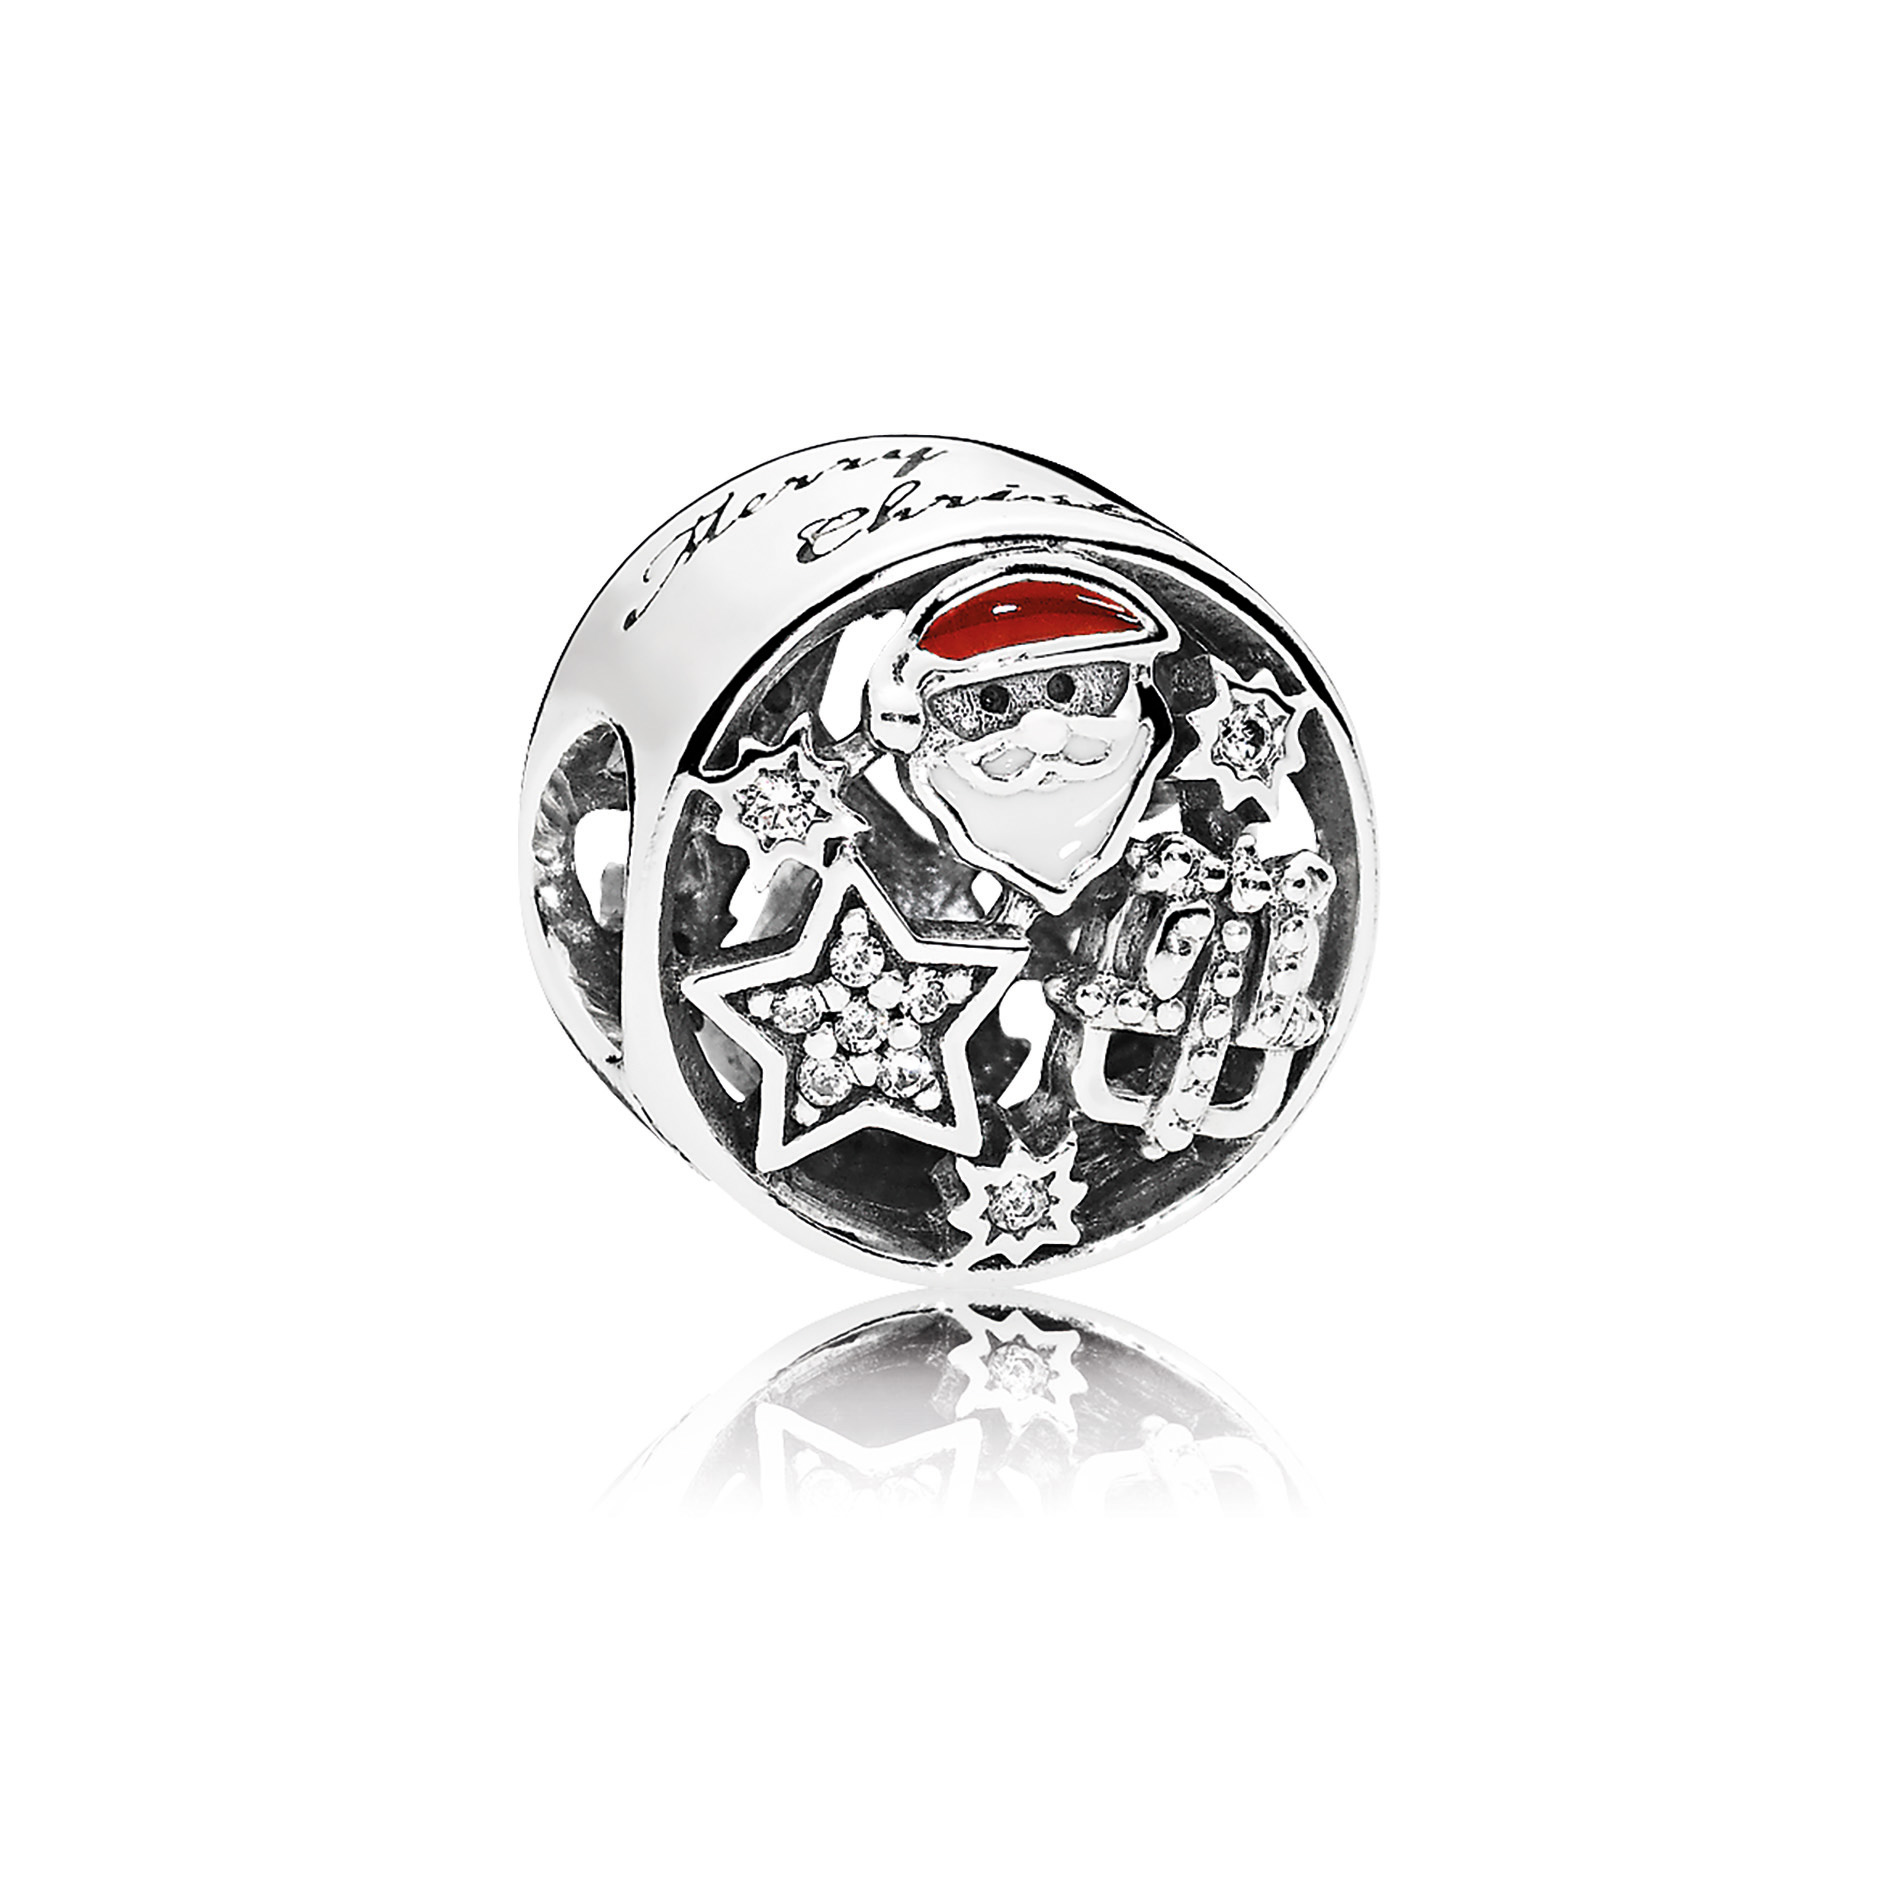 The Christmas Joy charm from PANDORA's Winter collection embraces the holiday season